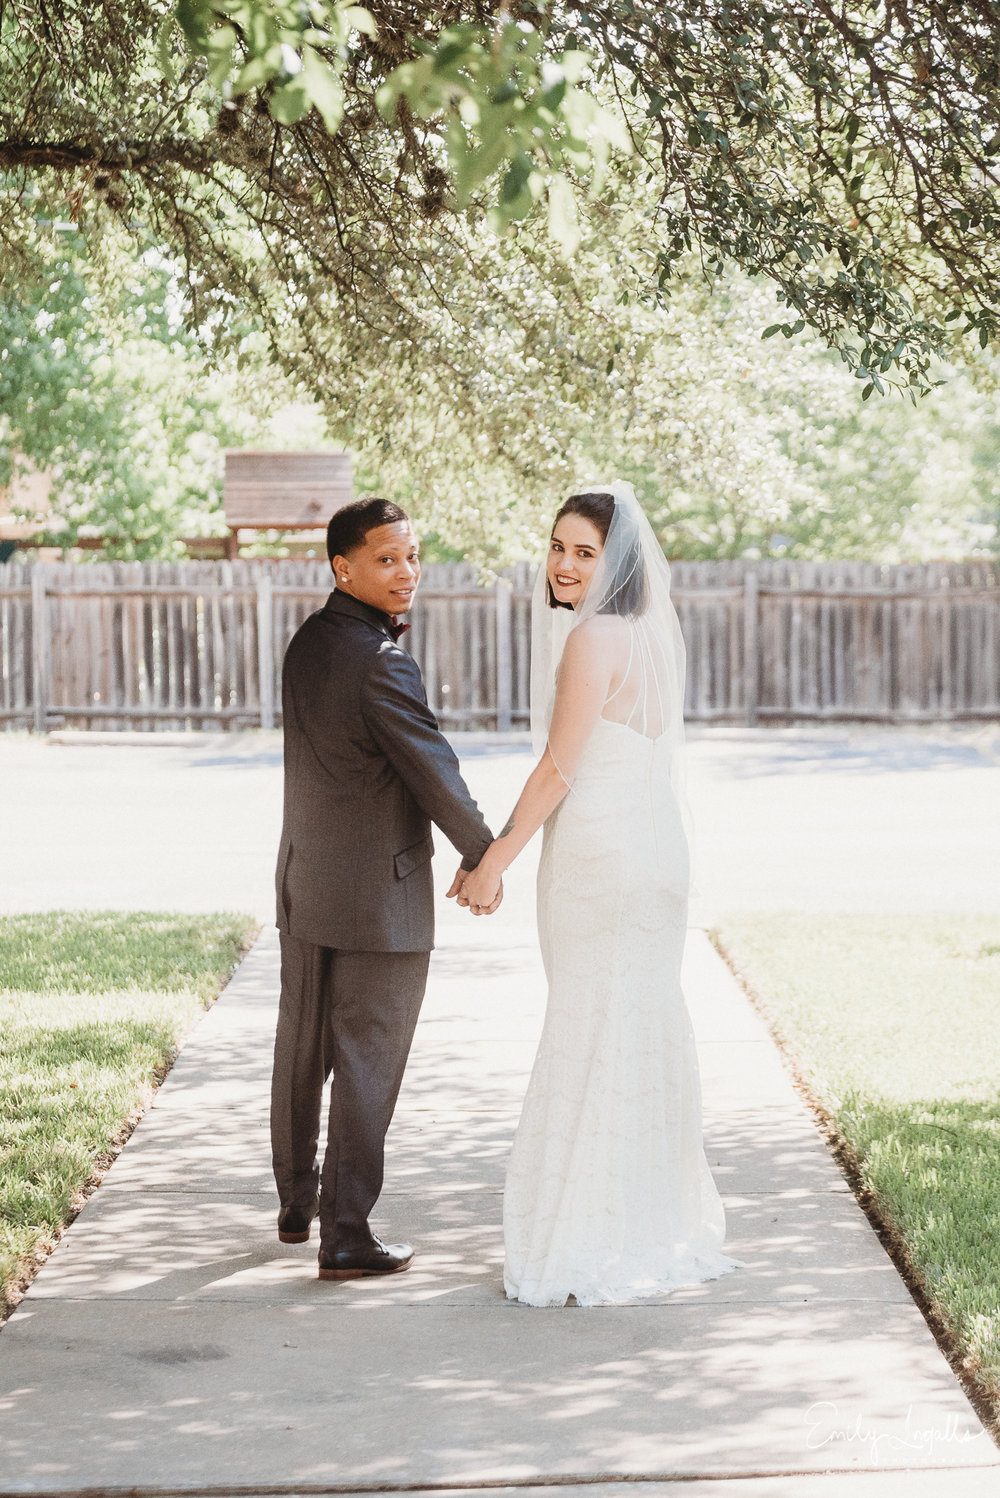 Wedding Photographer_Round Rock Wedding Photographer_Emily Ingalls Photography_Austin Photographer_Pflugerville Wedding Photographer_Georgetown Photographer-7.jpg